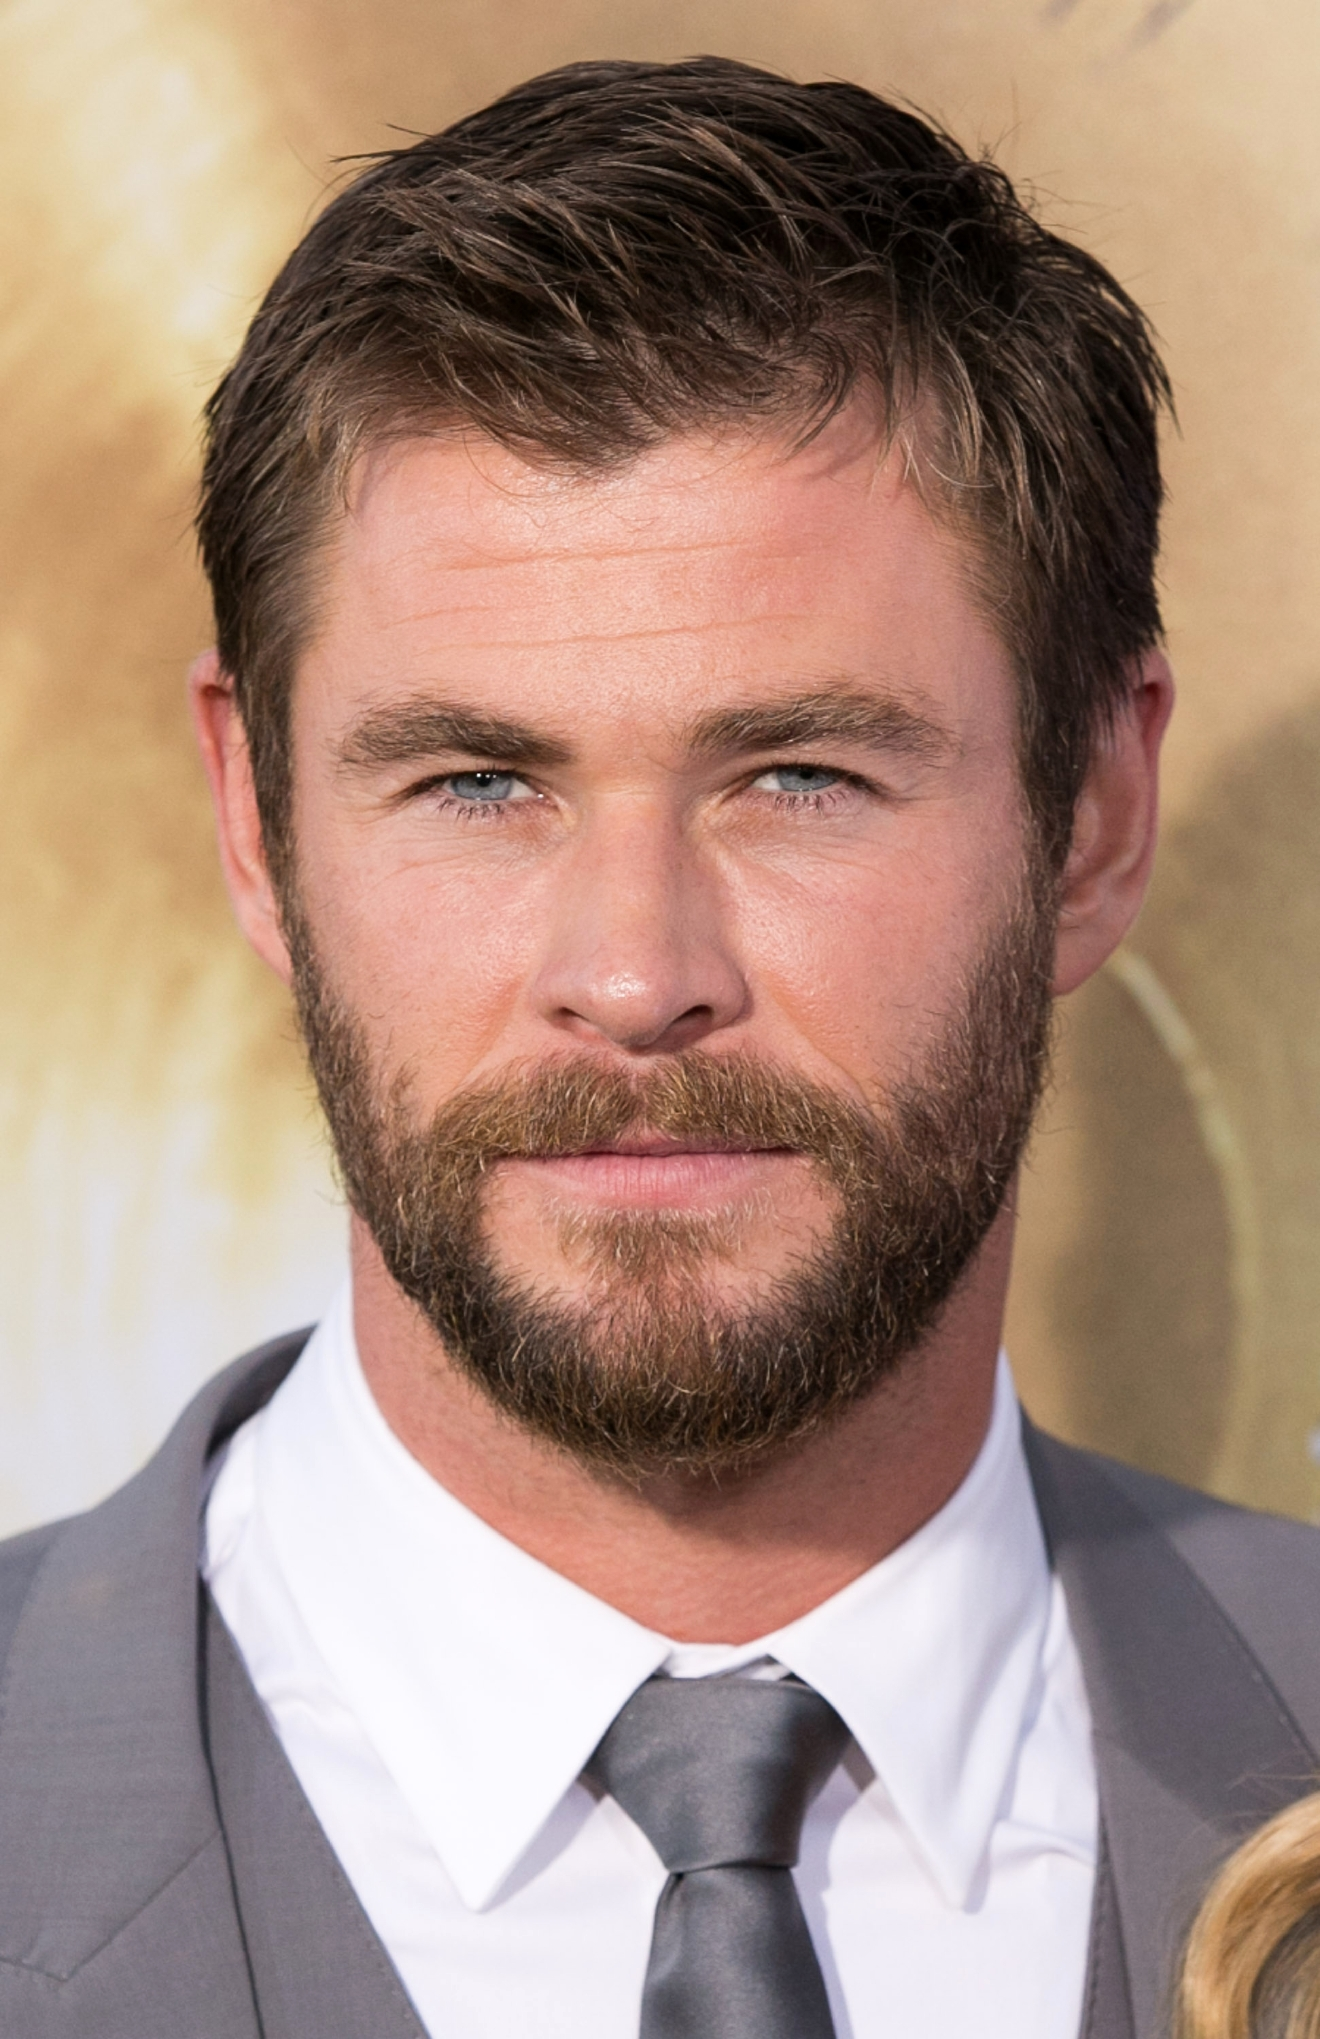 Chris Hemsworth attends The Huntsman: Winter's War Premiere at  Regency Village Theater in Westwood. (Brian To/WENN.com)